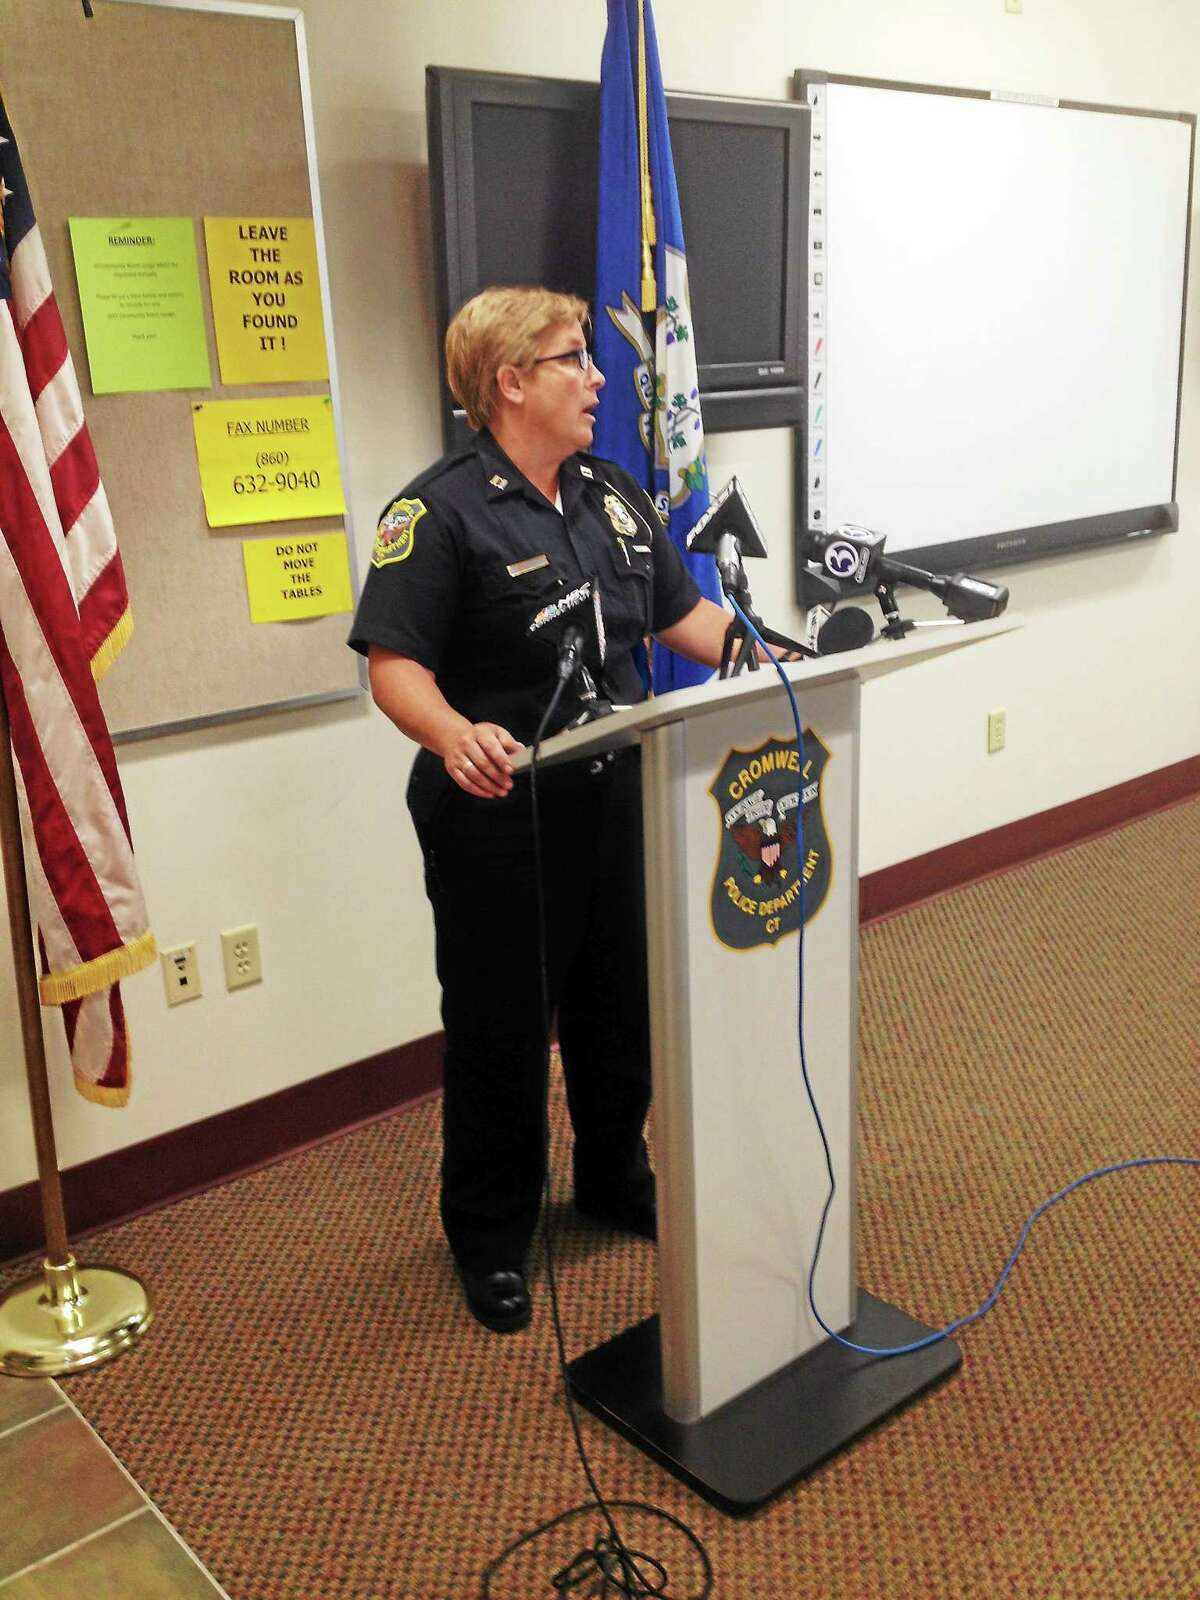 JEFF MILL -- THE MIDDLETOWN PRESS Cromwell police Capt. Denise Lamontagne speaks at a press conference Thursday on the probe of alleged hazing on the Cromwell/Portland football team.